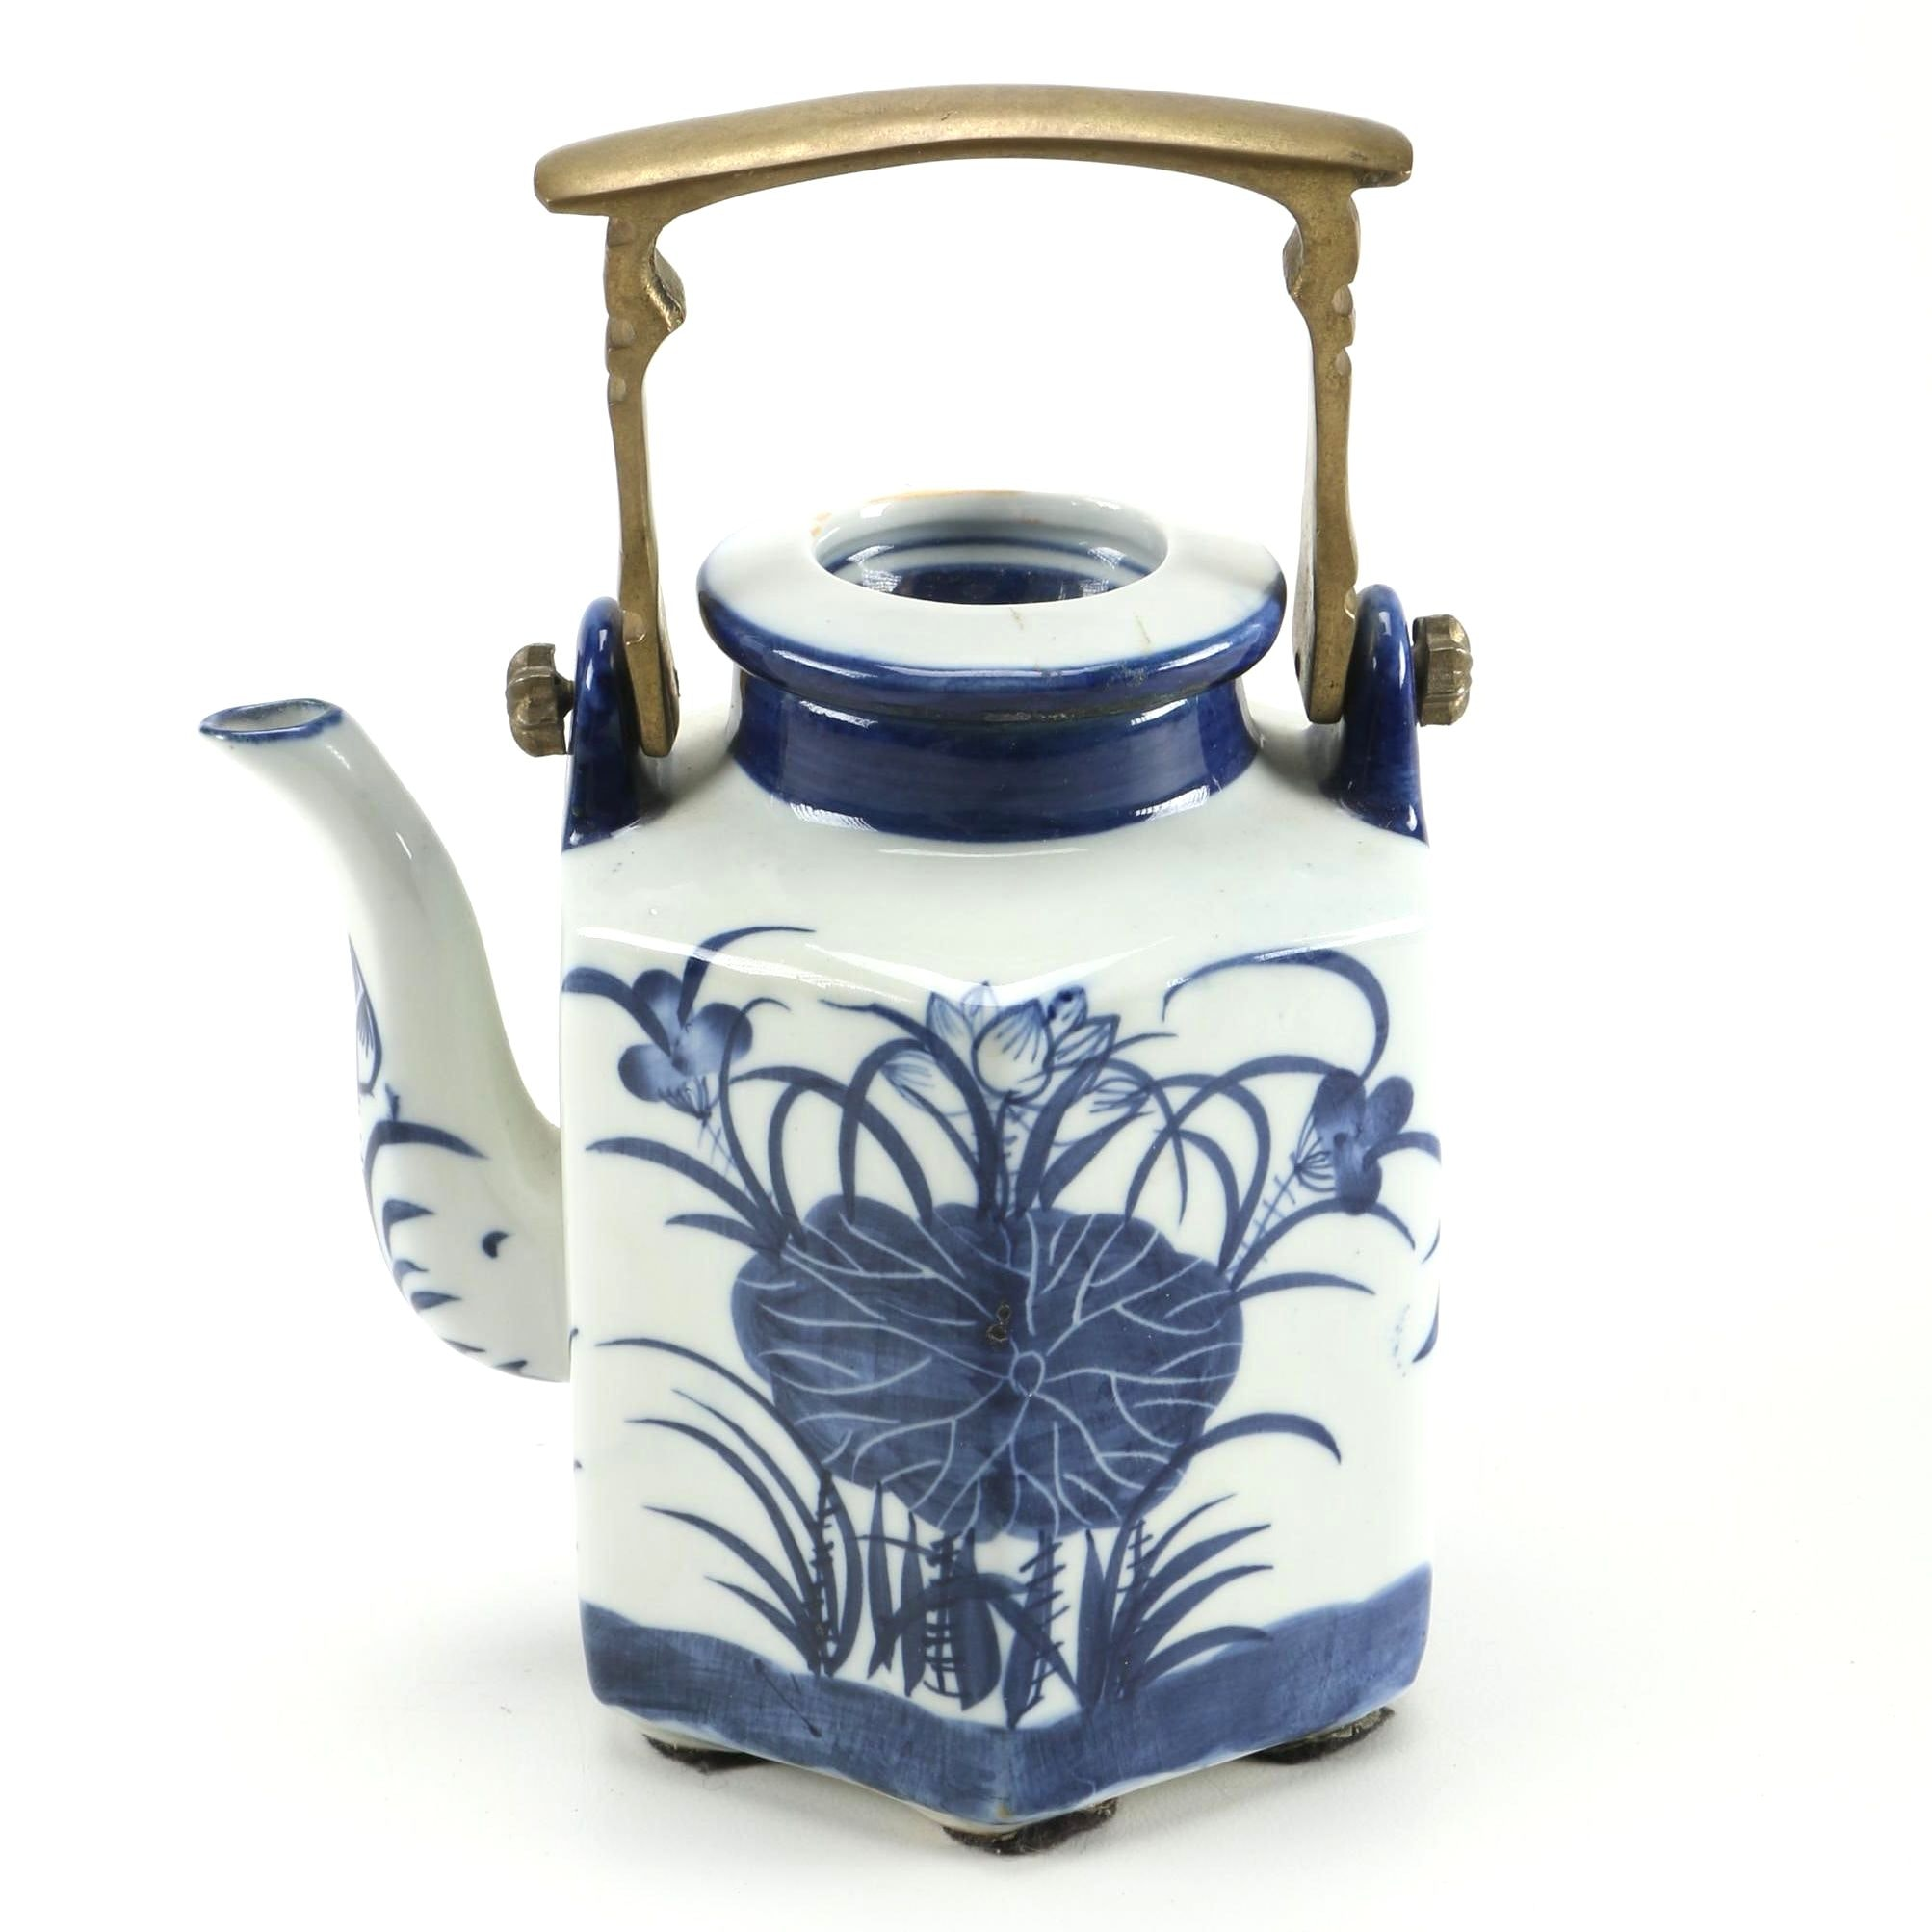 Ceramic Teapot with Brass Handle